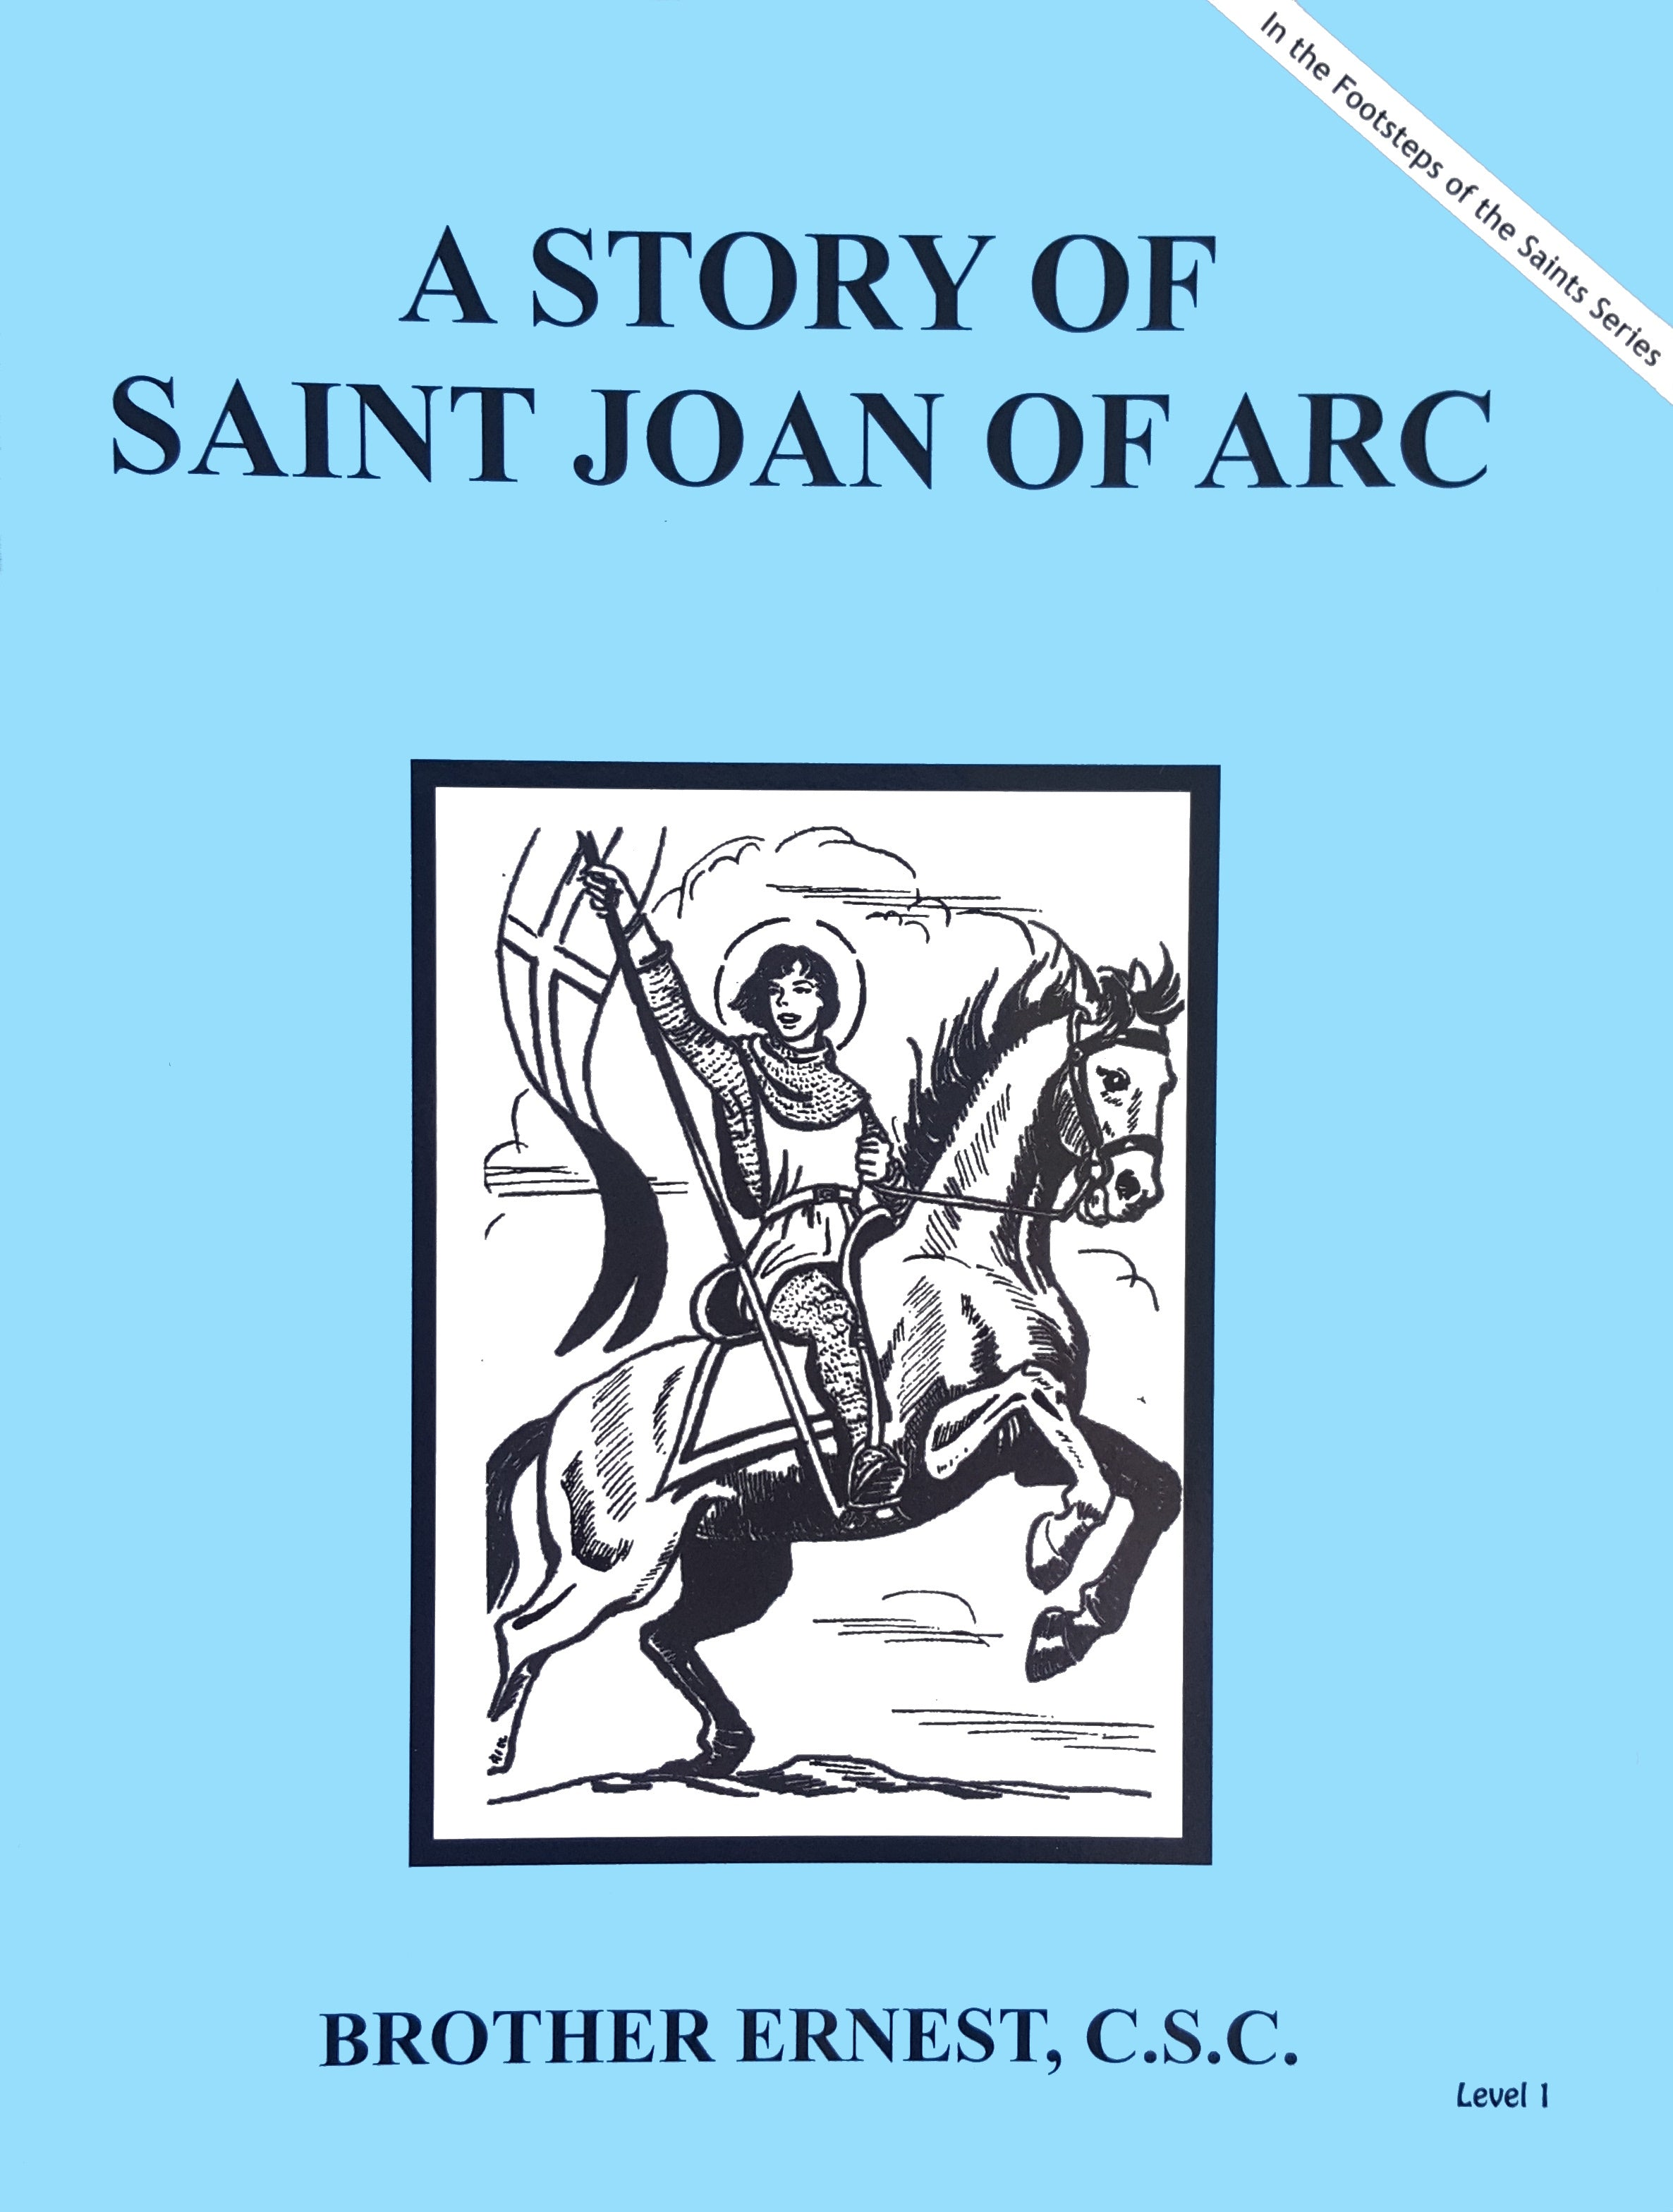 The Story Of Saint Joan Of Arc - ABCatholic